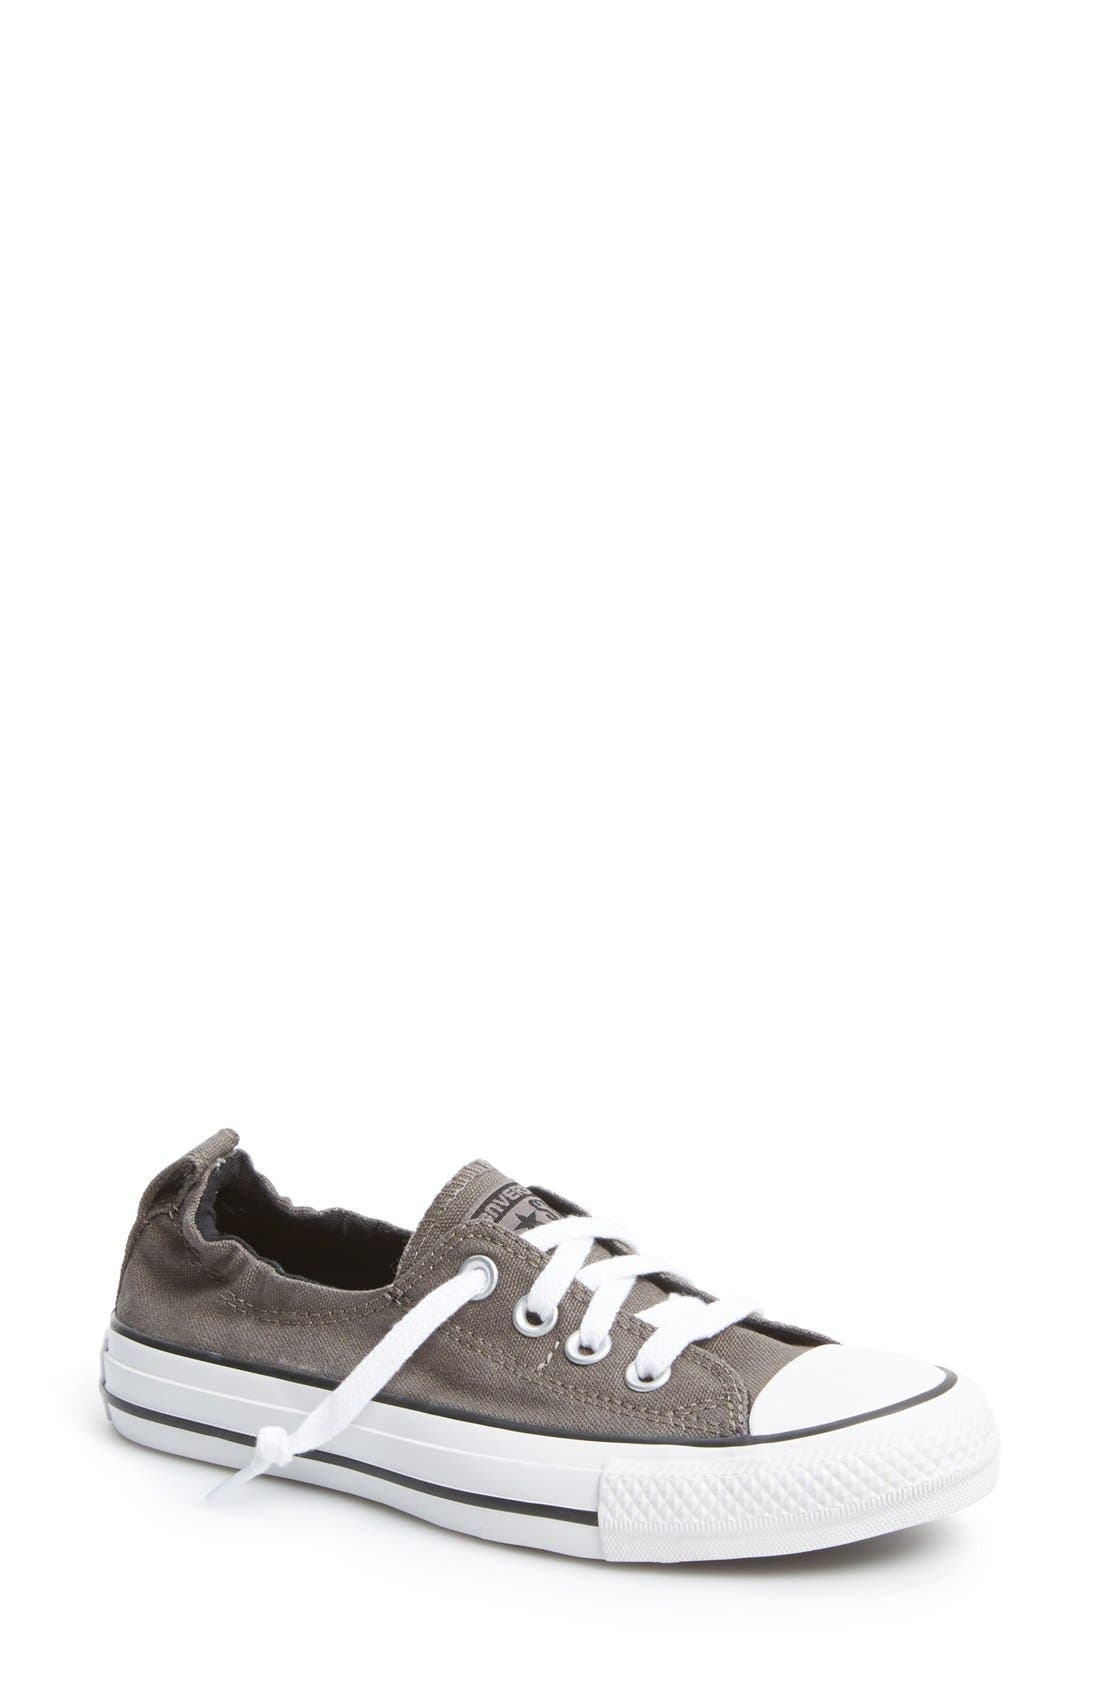 Main Image - Converse Chuck Taylor® All Star® Shoreline Low Top Sneaker (Women)